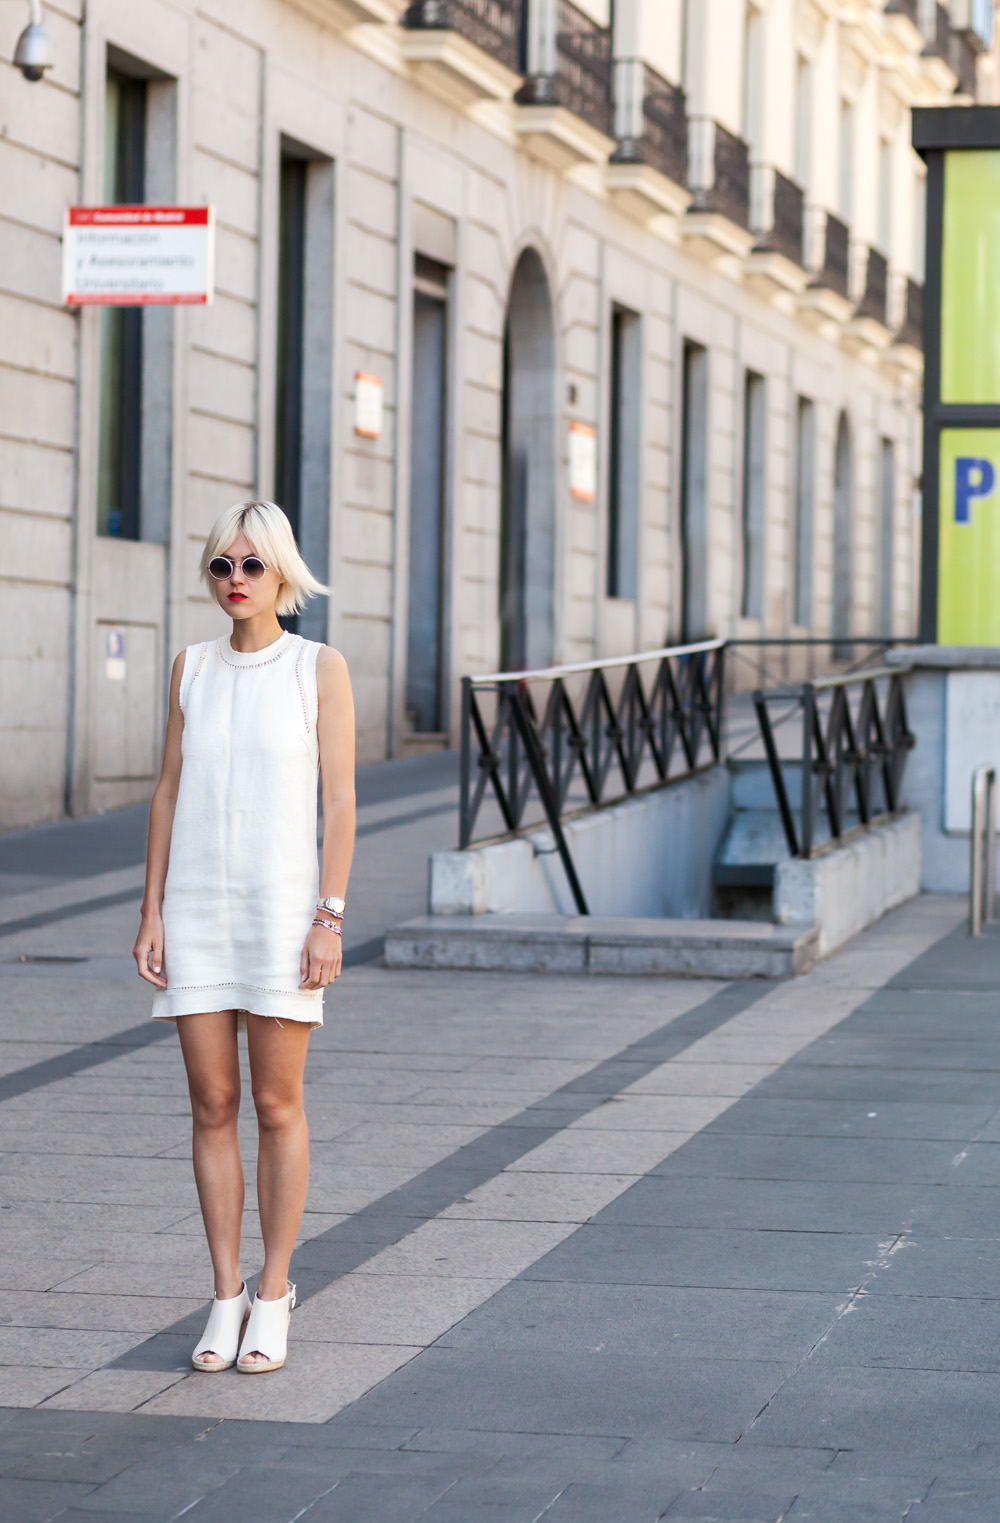 All White Outfits: How To Wear White And The Outfits To ...